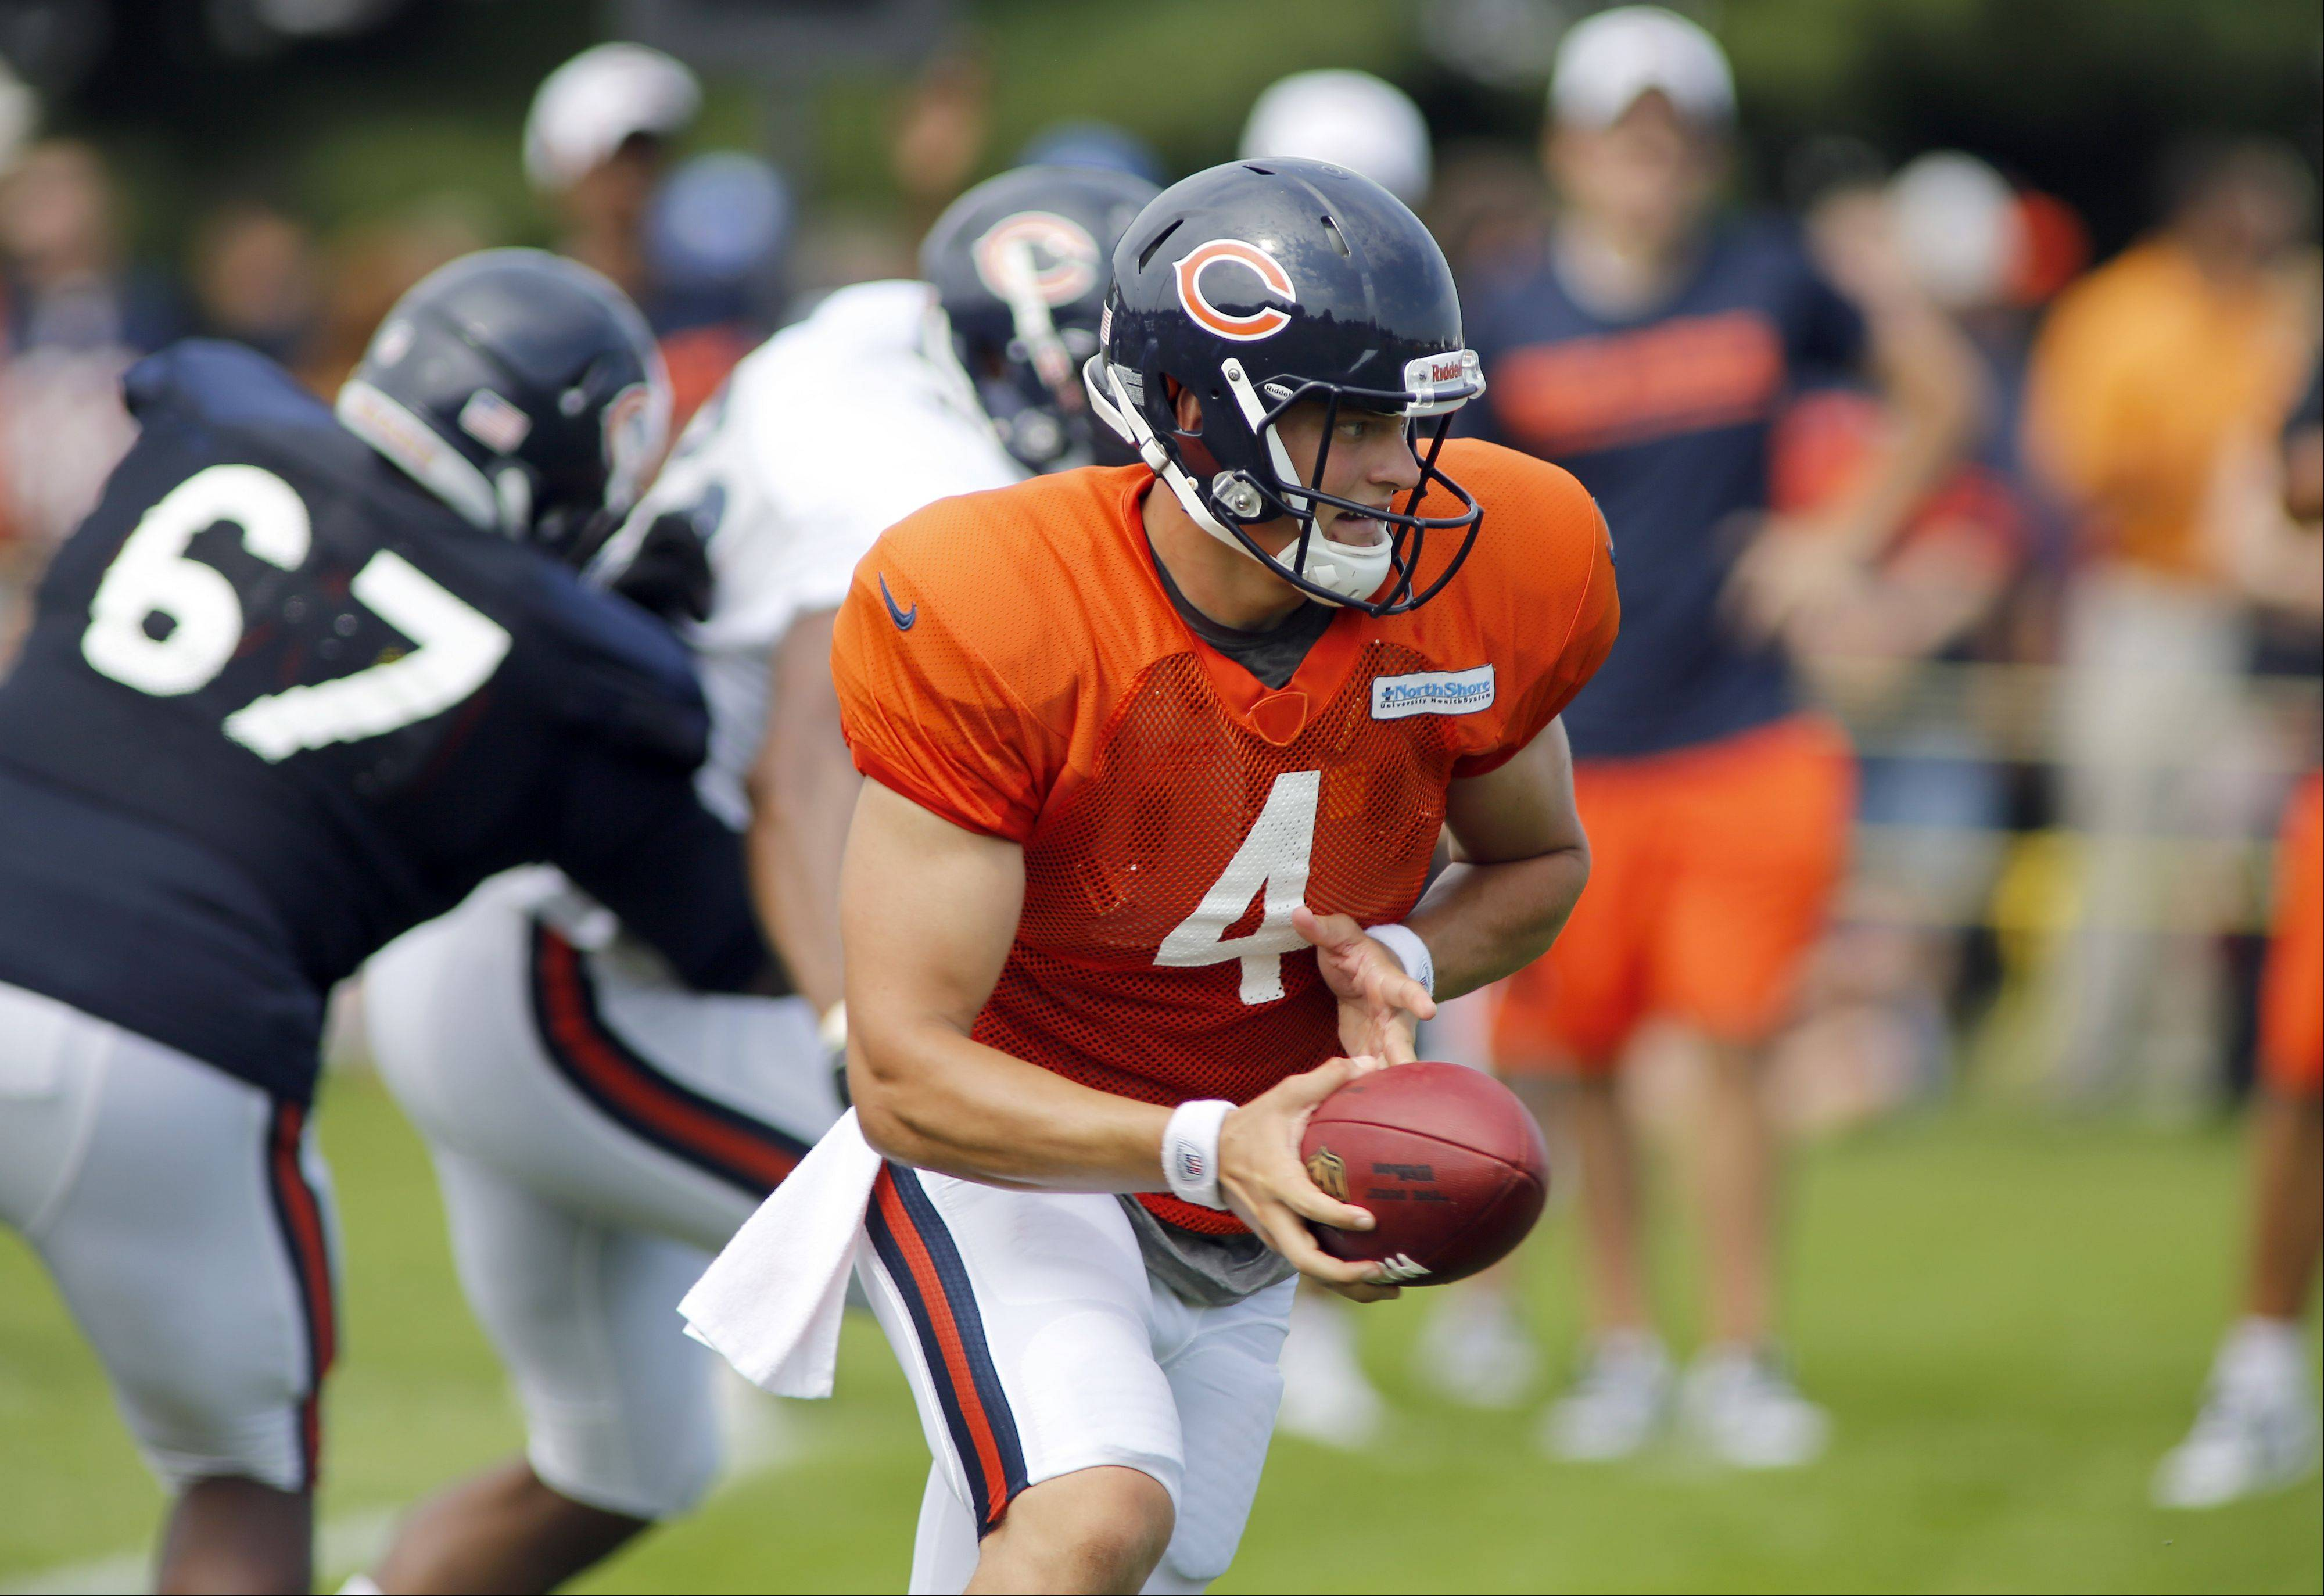 Bears backups like quarterback Matt Blanchard (4) figure to see most of the action in tonight's preseason game against Carolina.